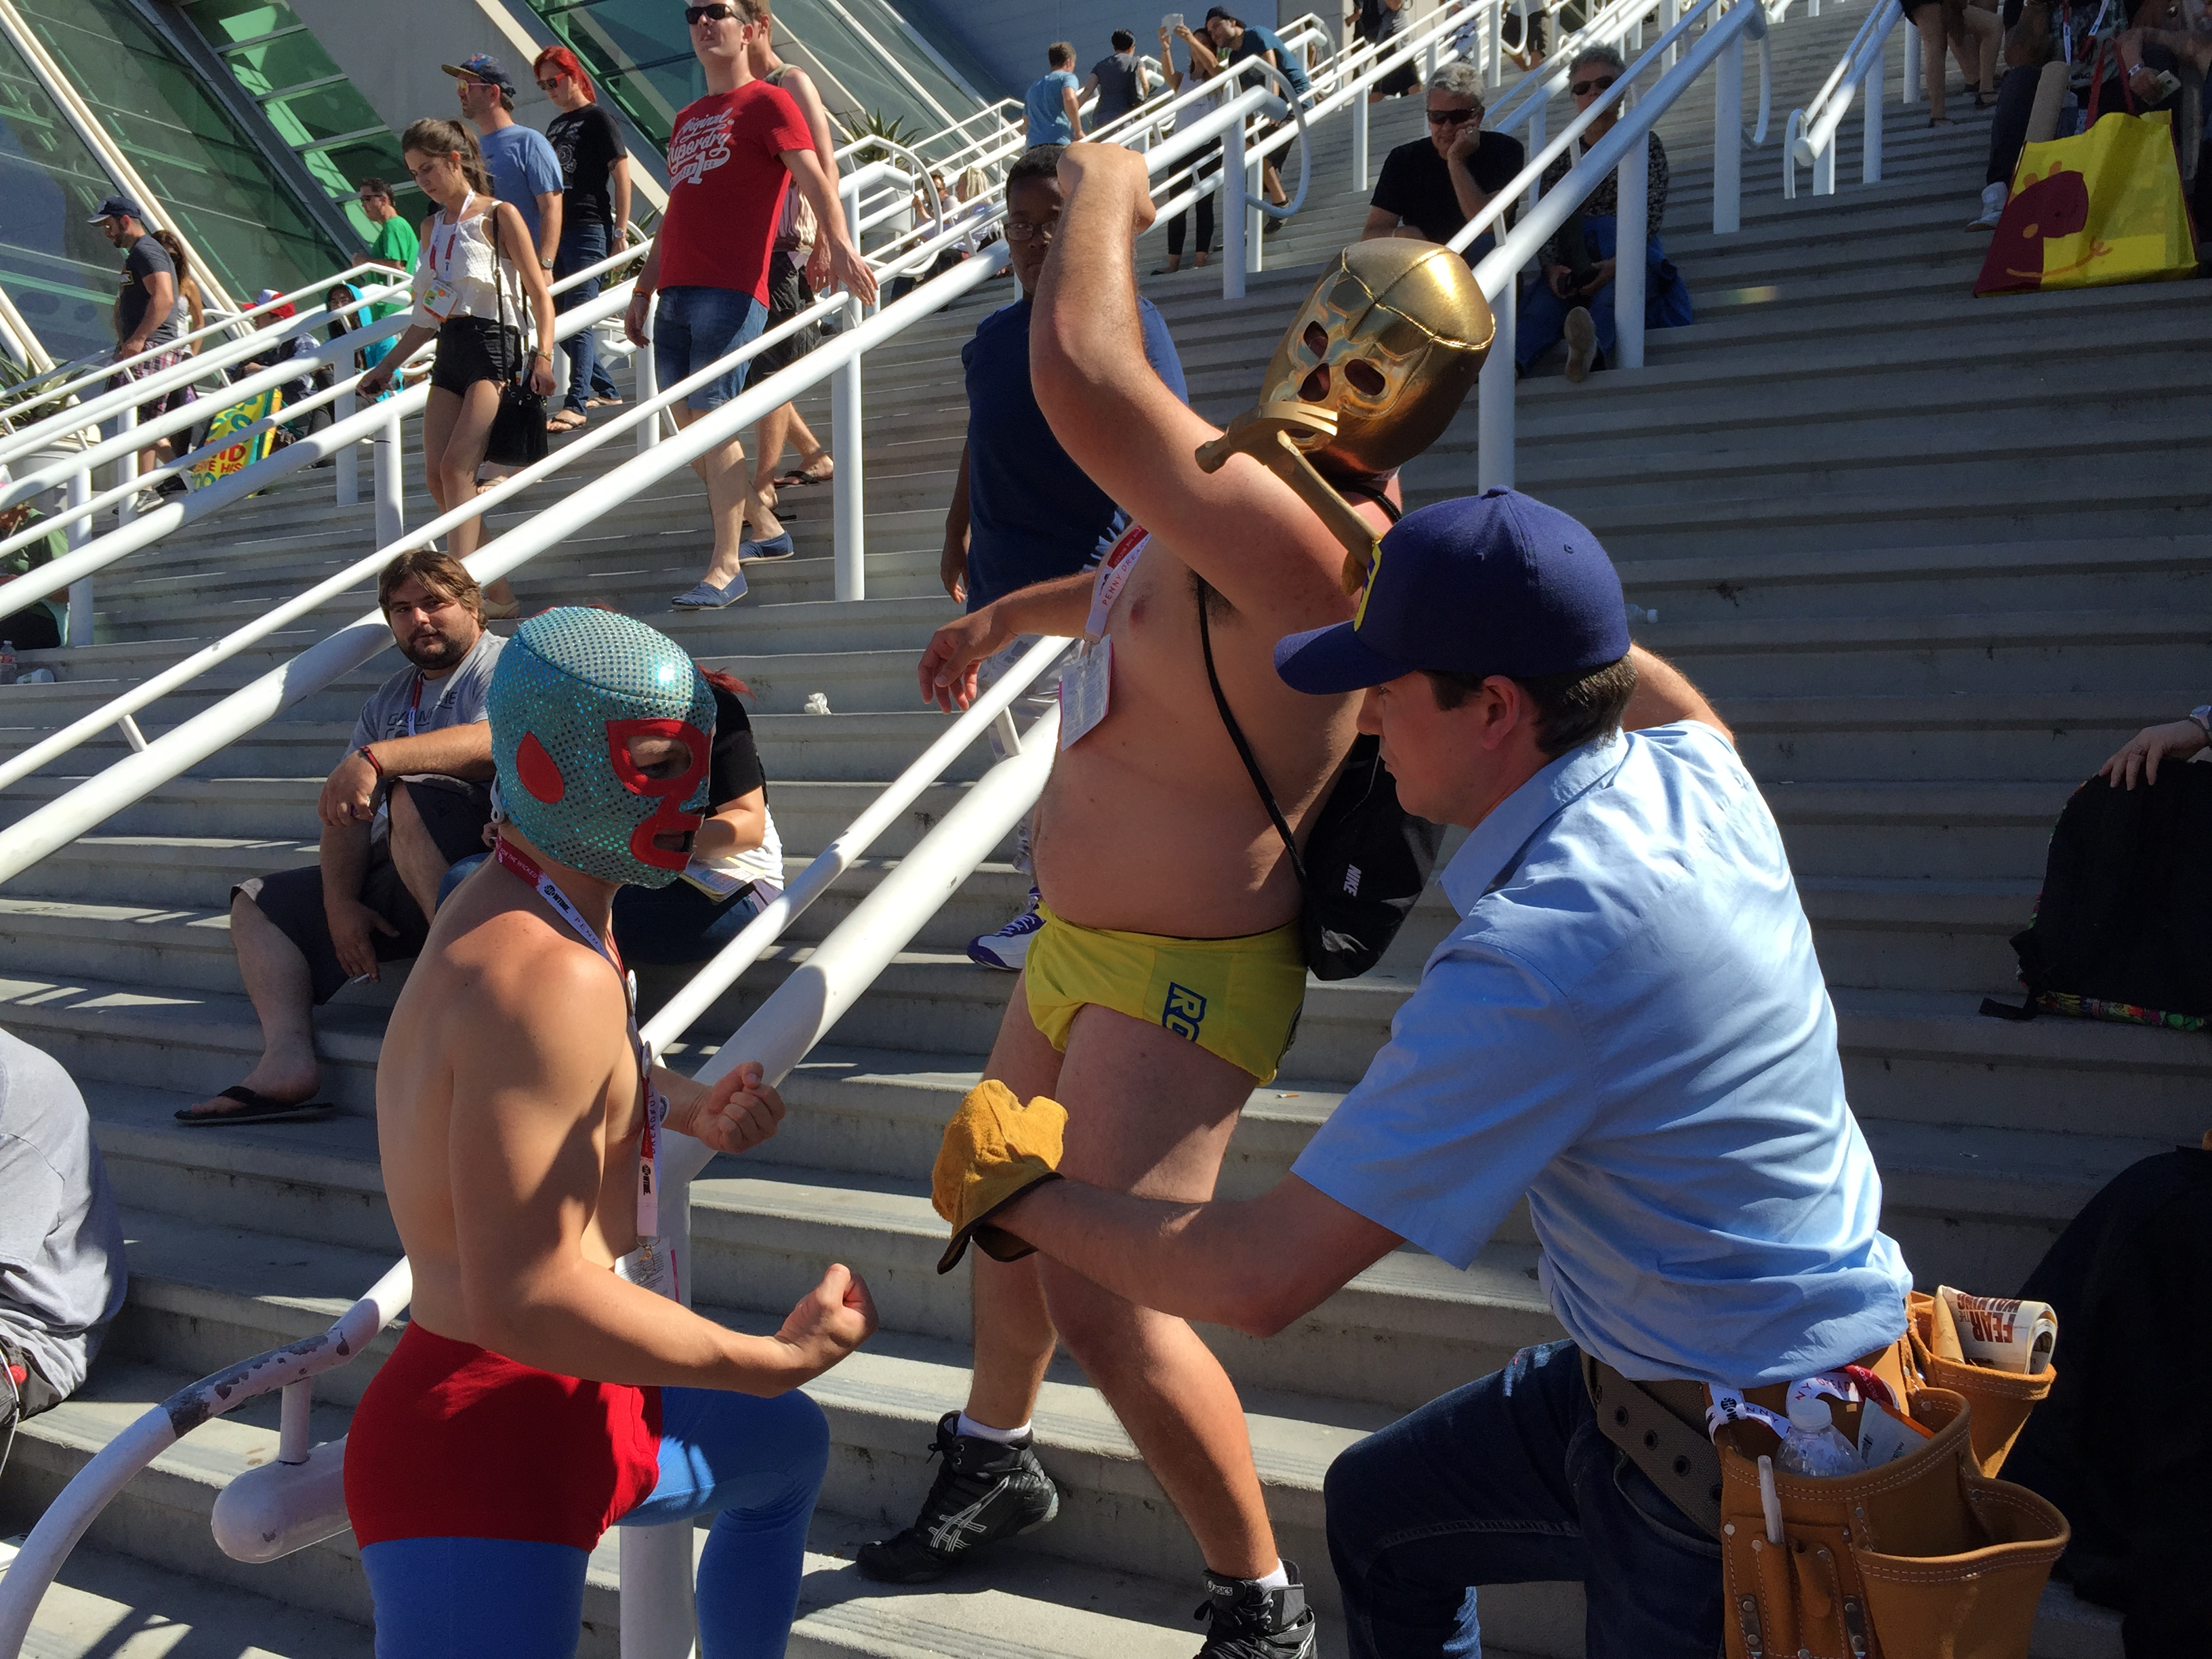 Fix-It Felix, Jr. at SDCC 2015 with luchadores